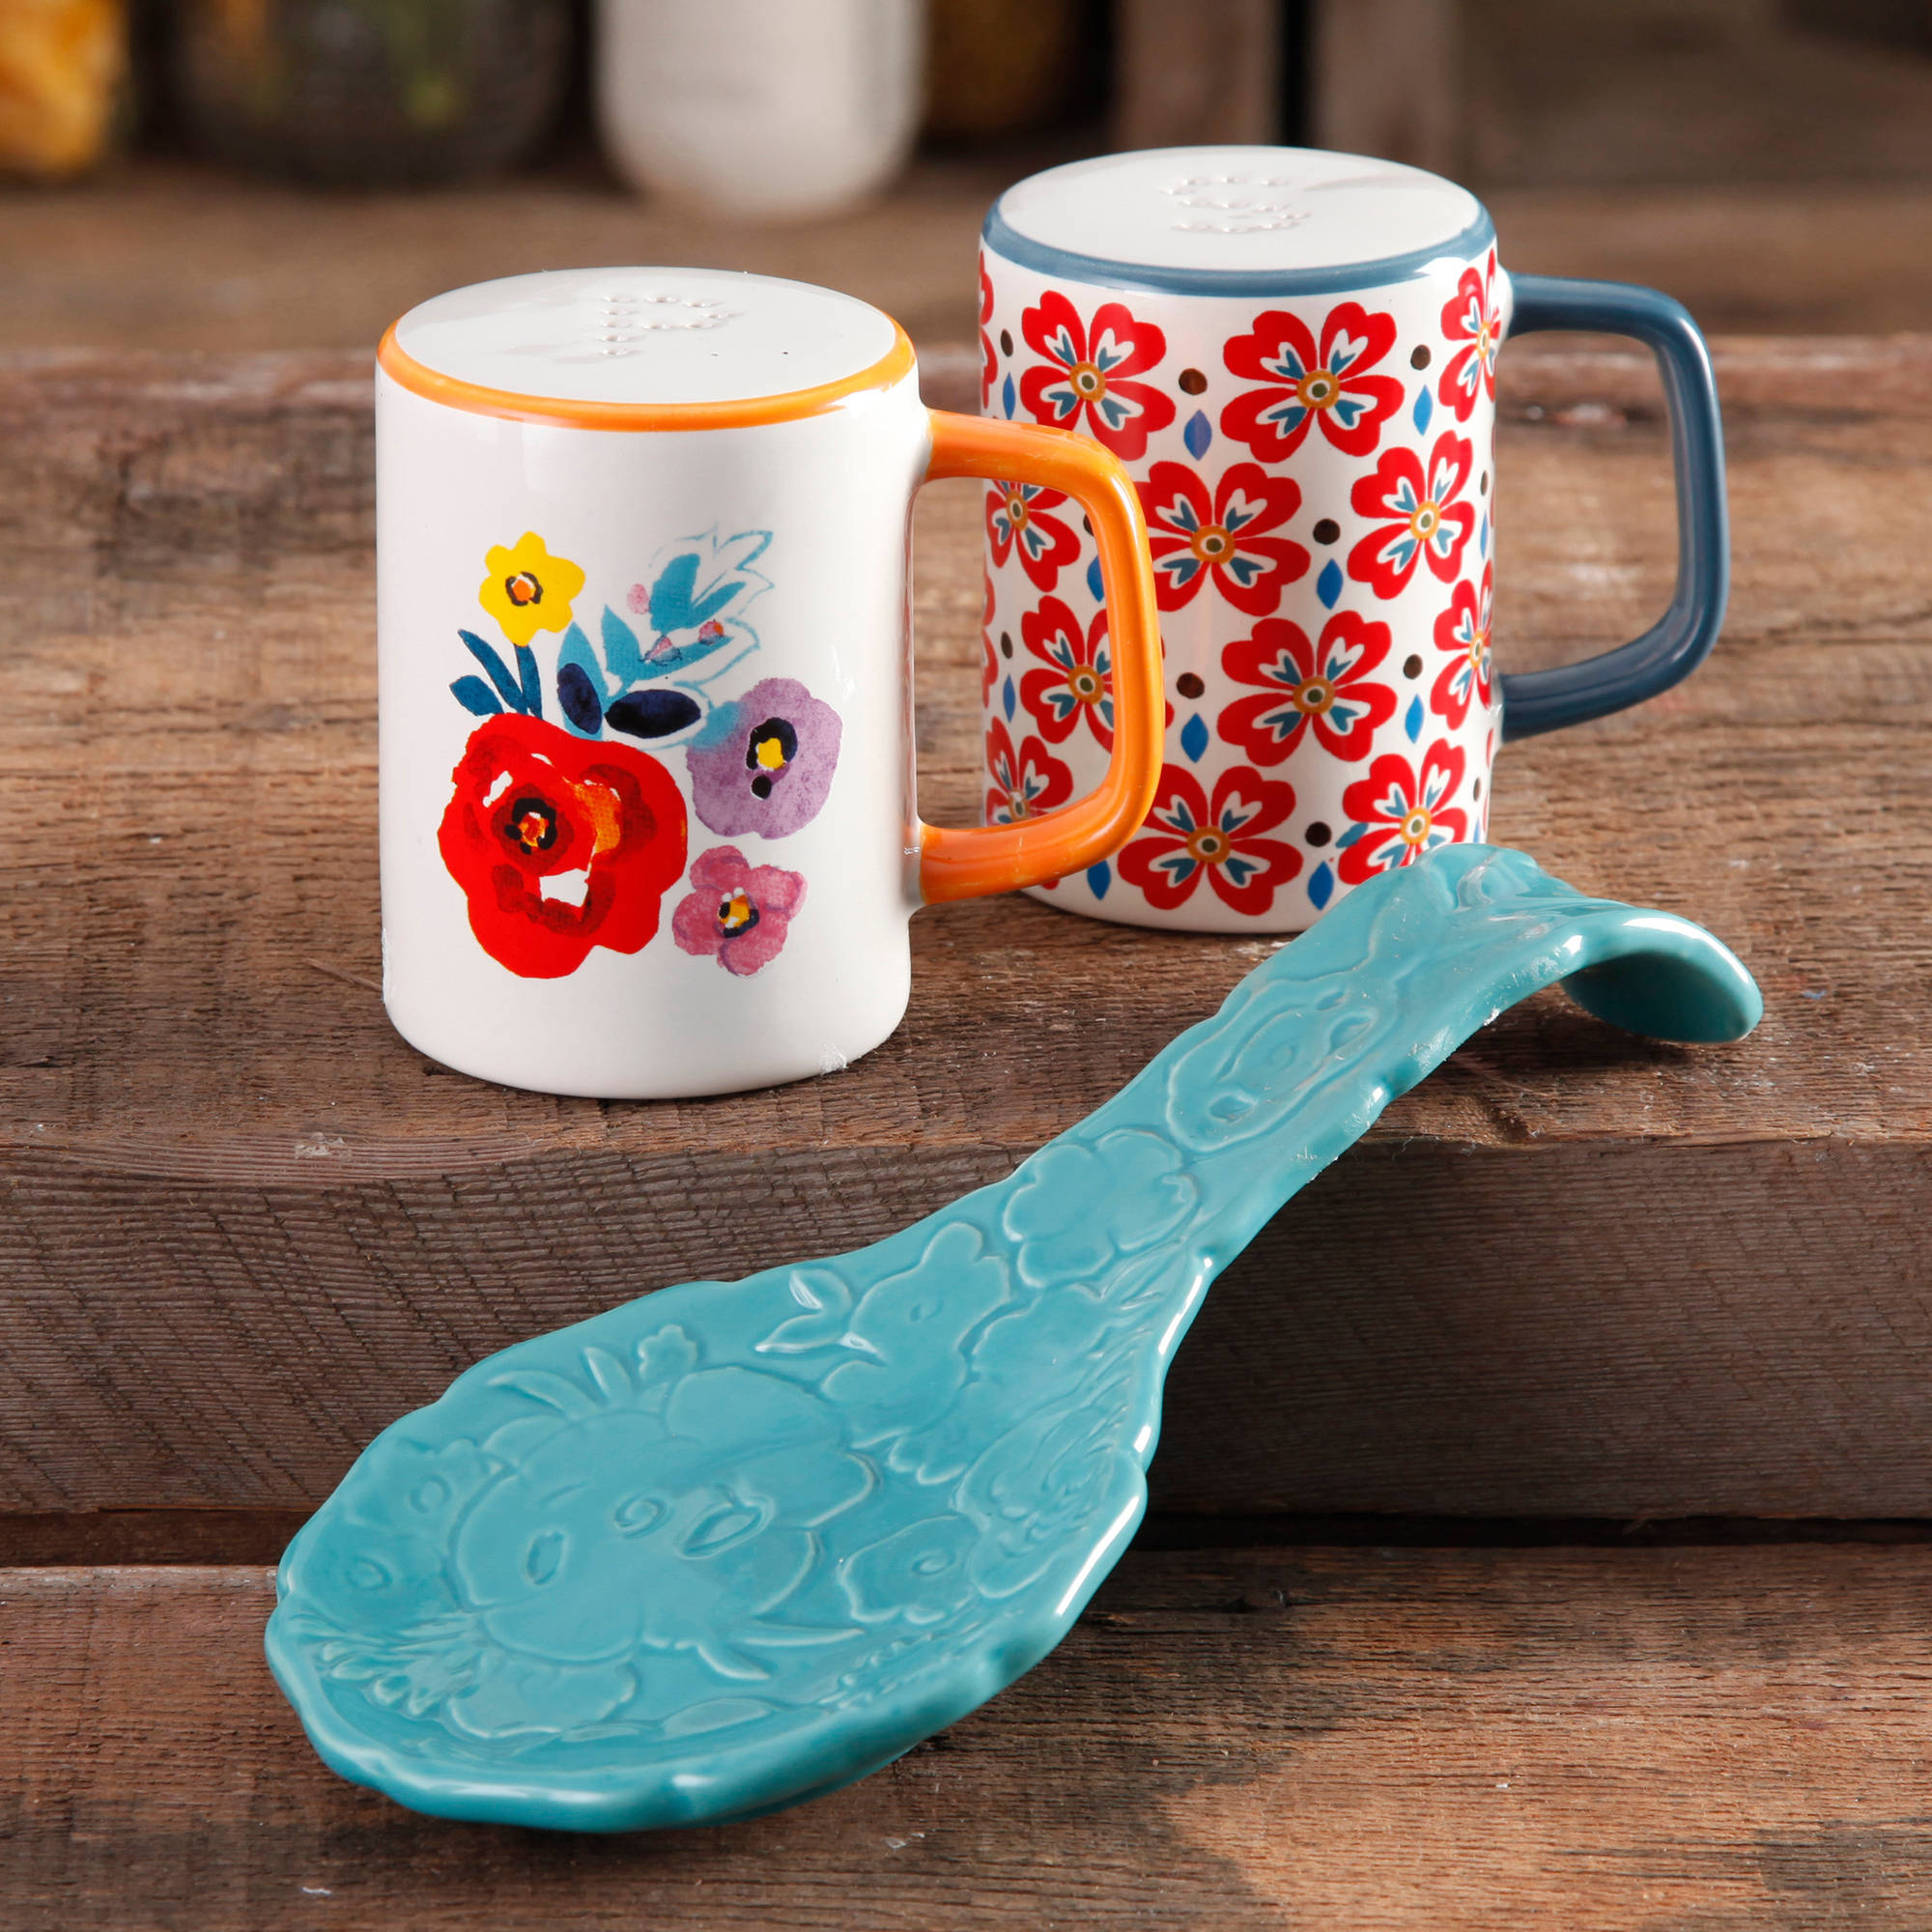 The Pioneer Woman Flea Market StoNeware Turquoise Spoon Rest & Salt And Pepper Set by Gibson Overseas Inc